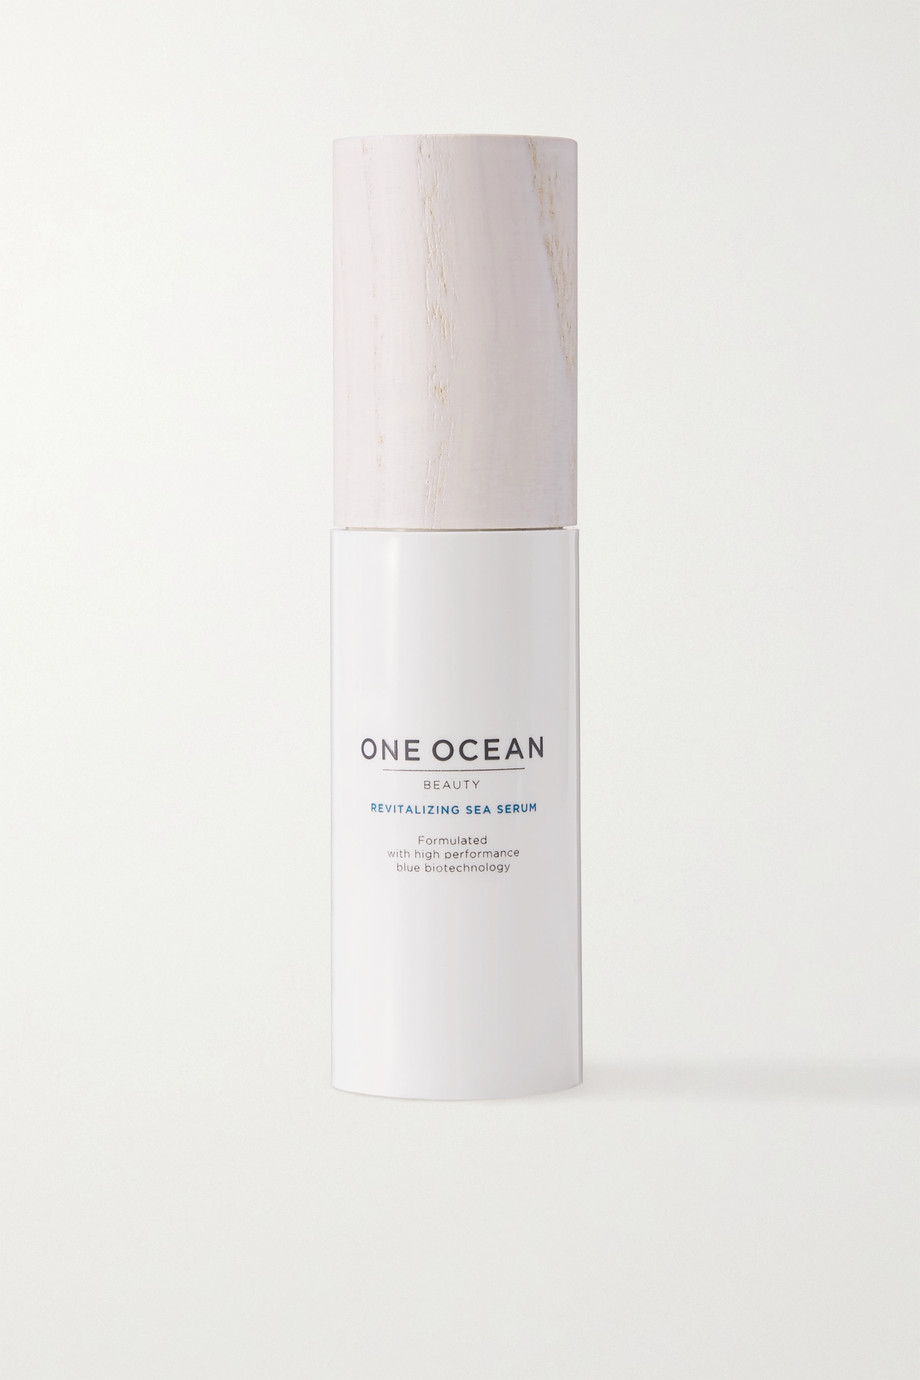 One Ocean Beauty Revitalizing Sea Serum, 30 ml – Serum